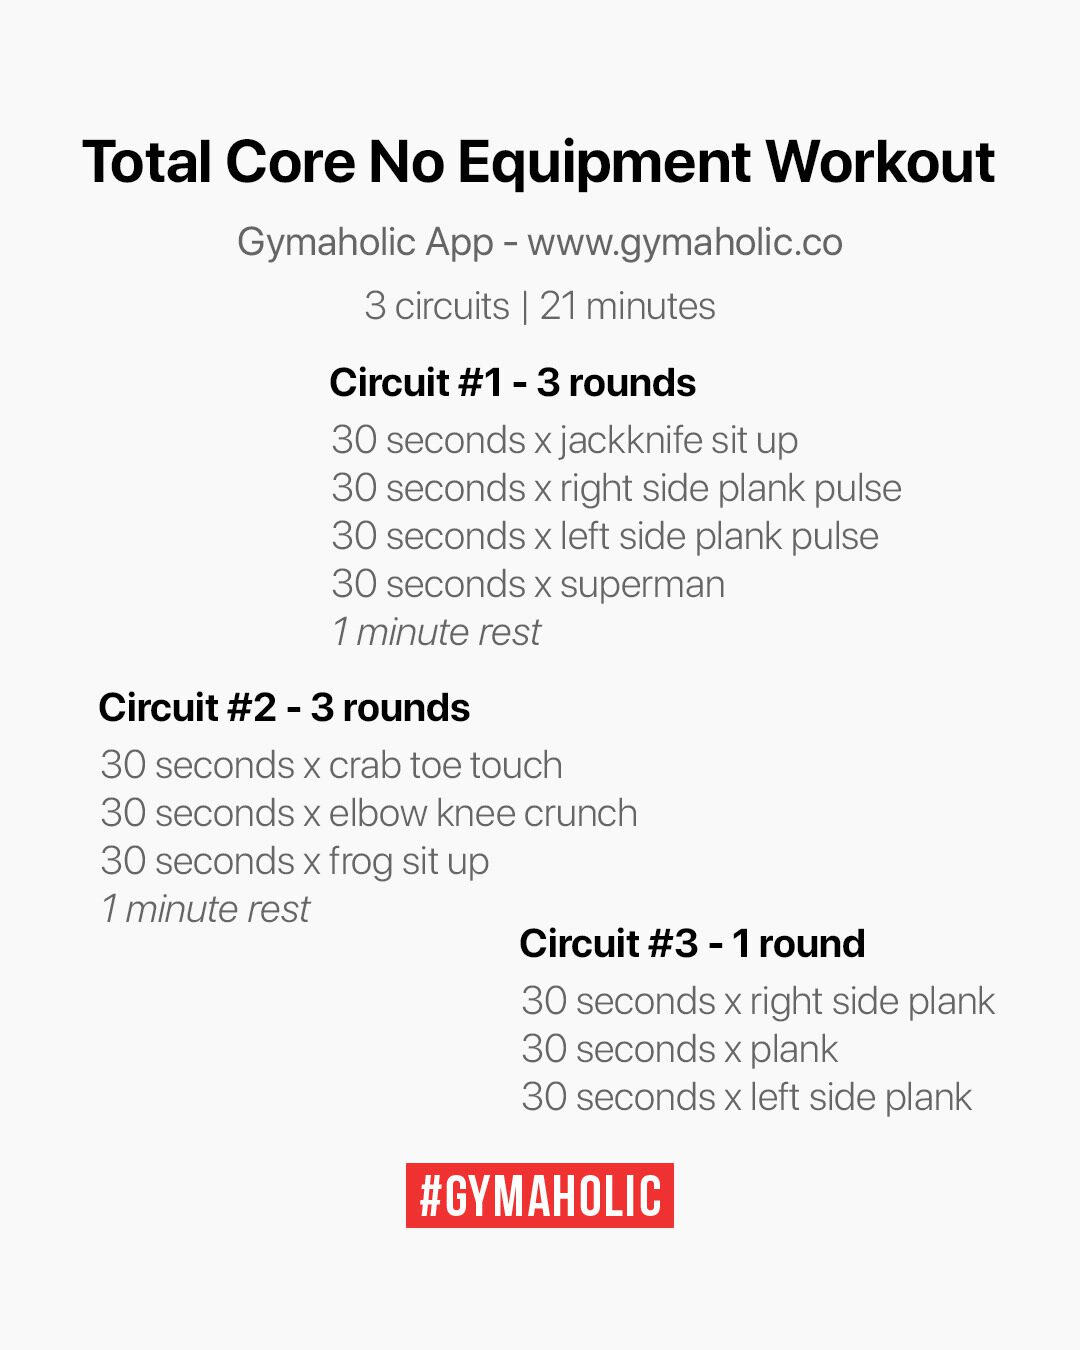 Total Core No Equipment Workout